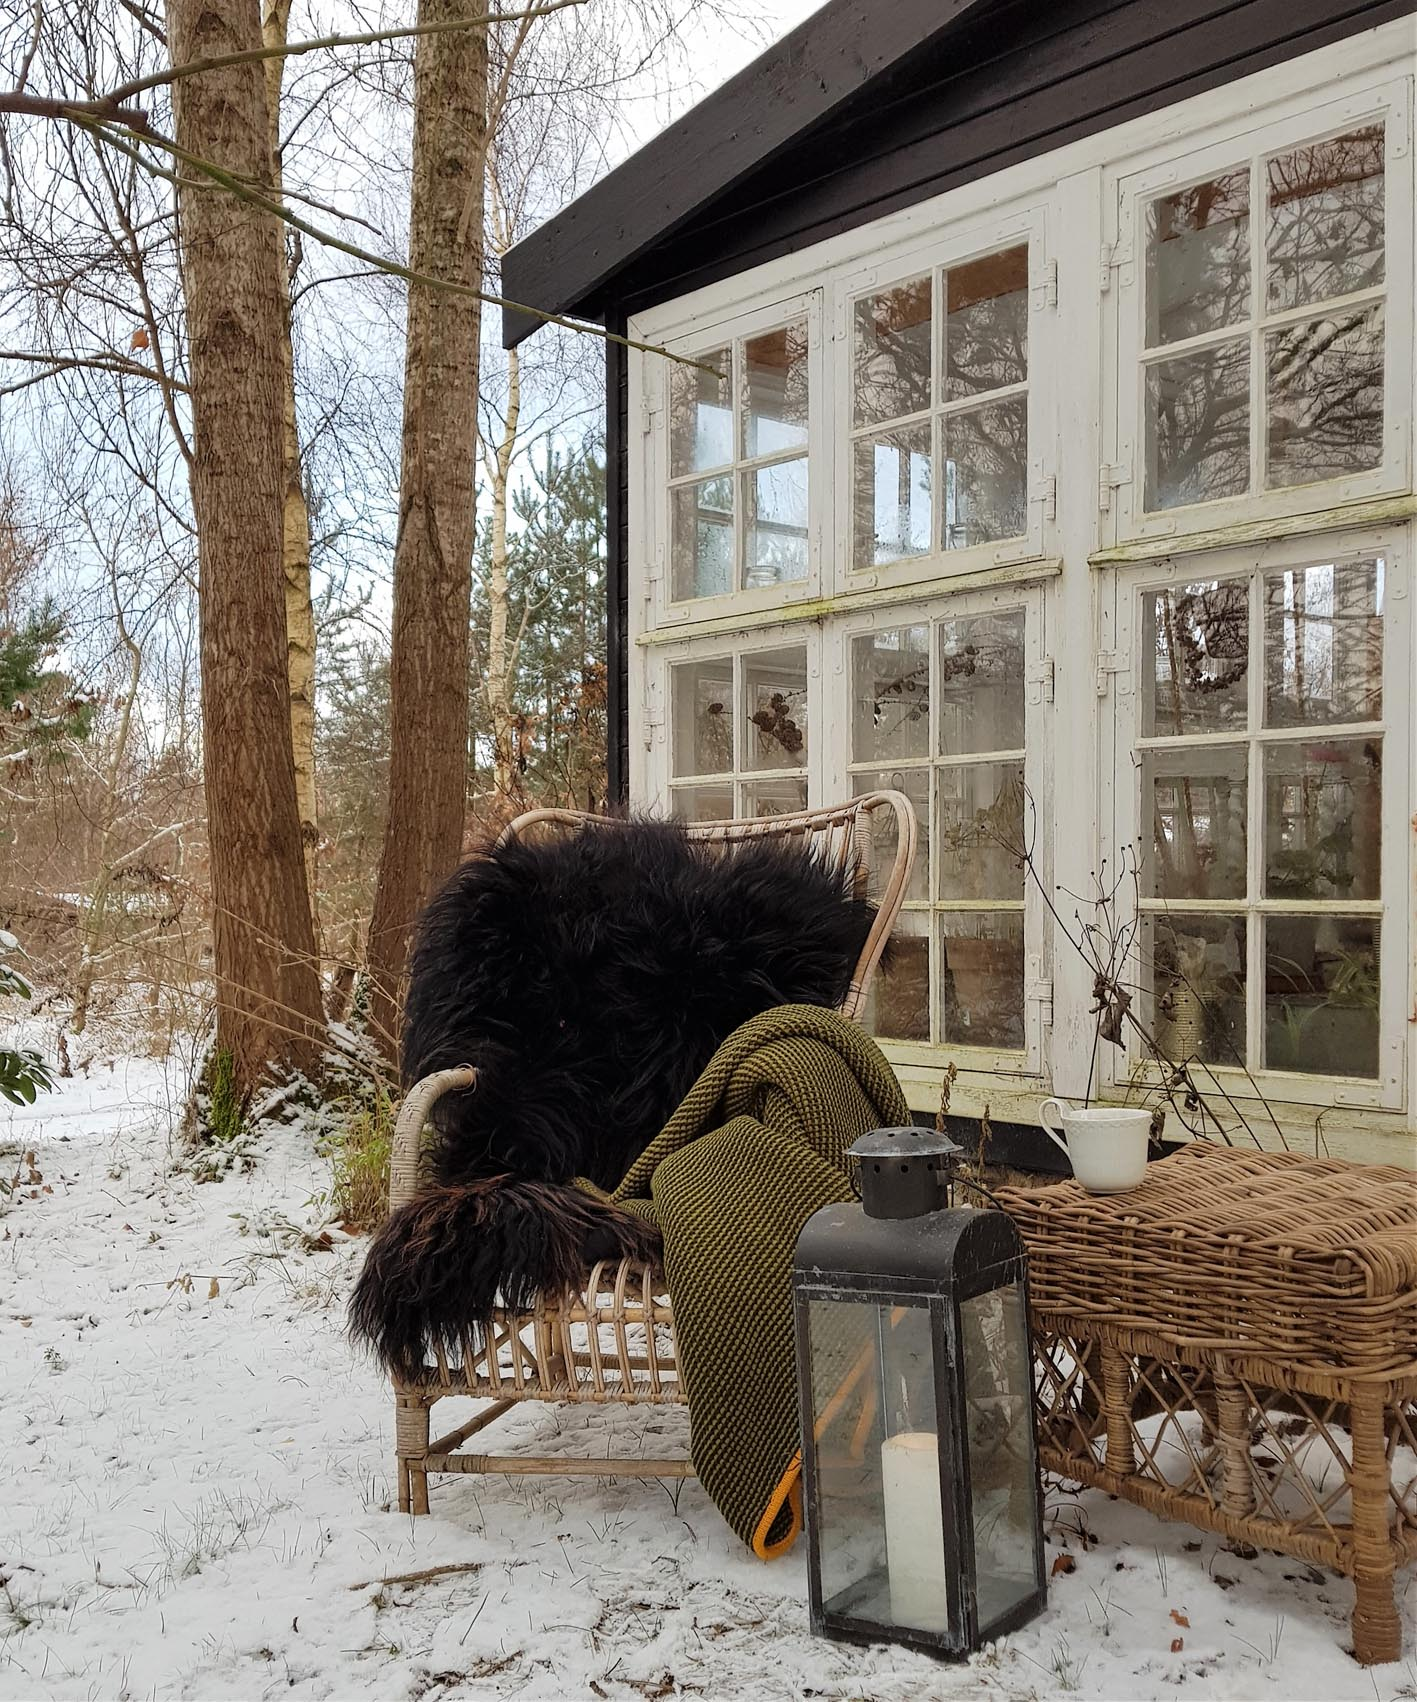 The old chair made of bamboo has moved outside from the greenhouse and  filled with sheepskin and a warming blancket it is ready for a sunny winterday.